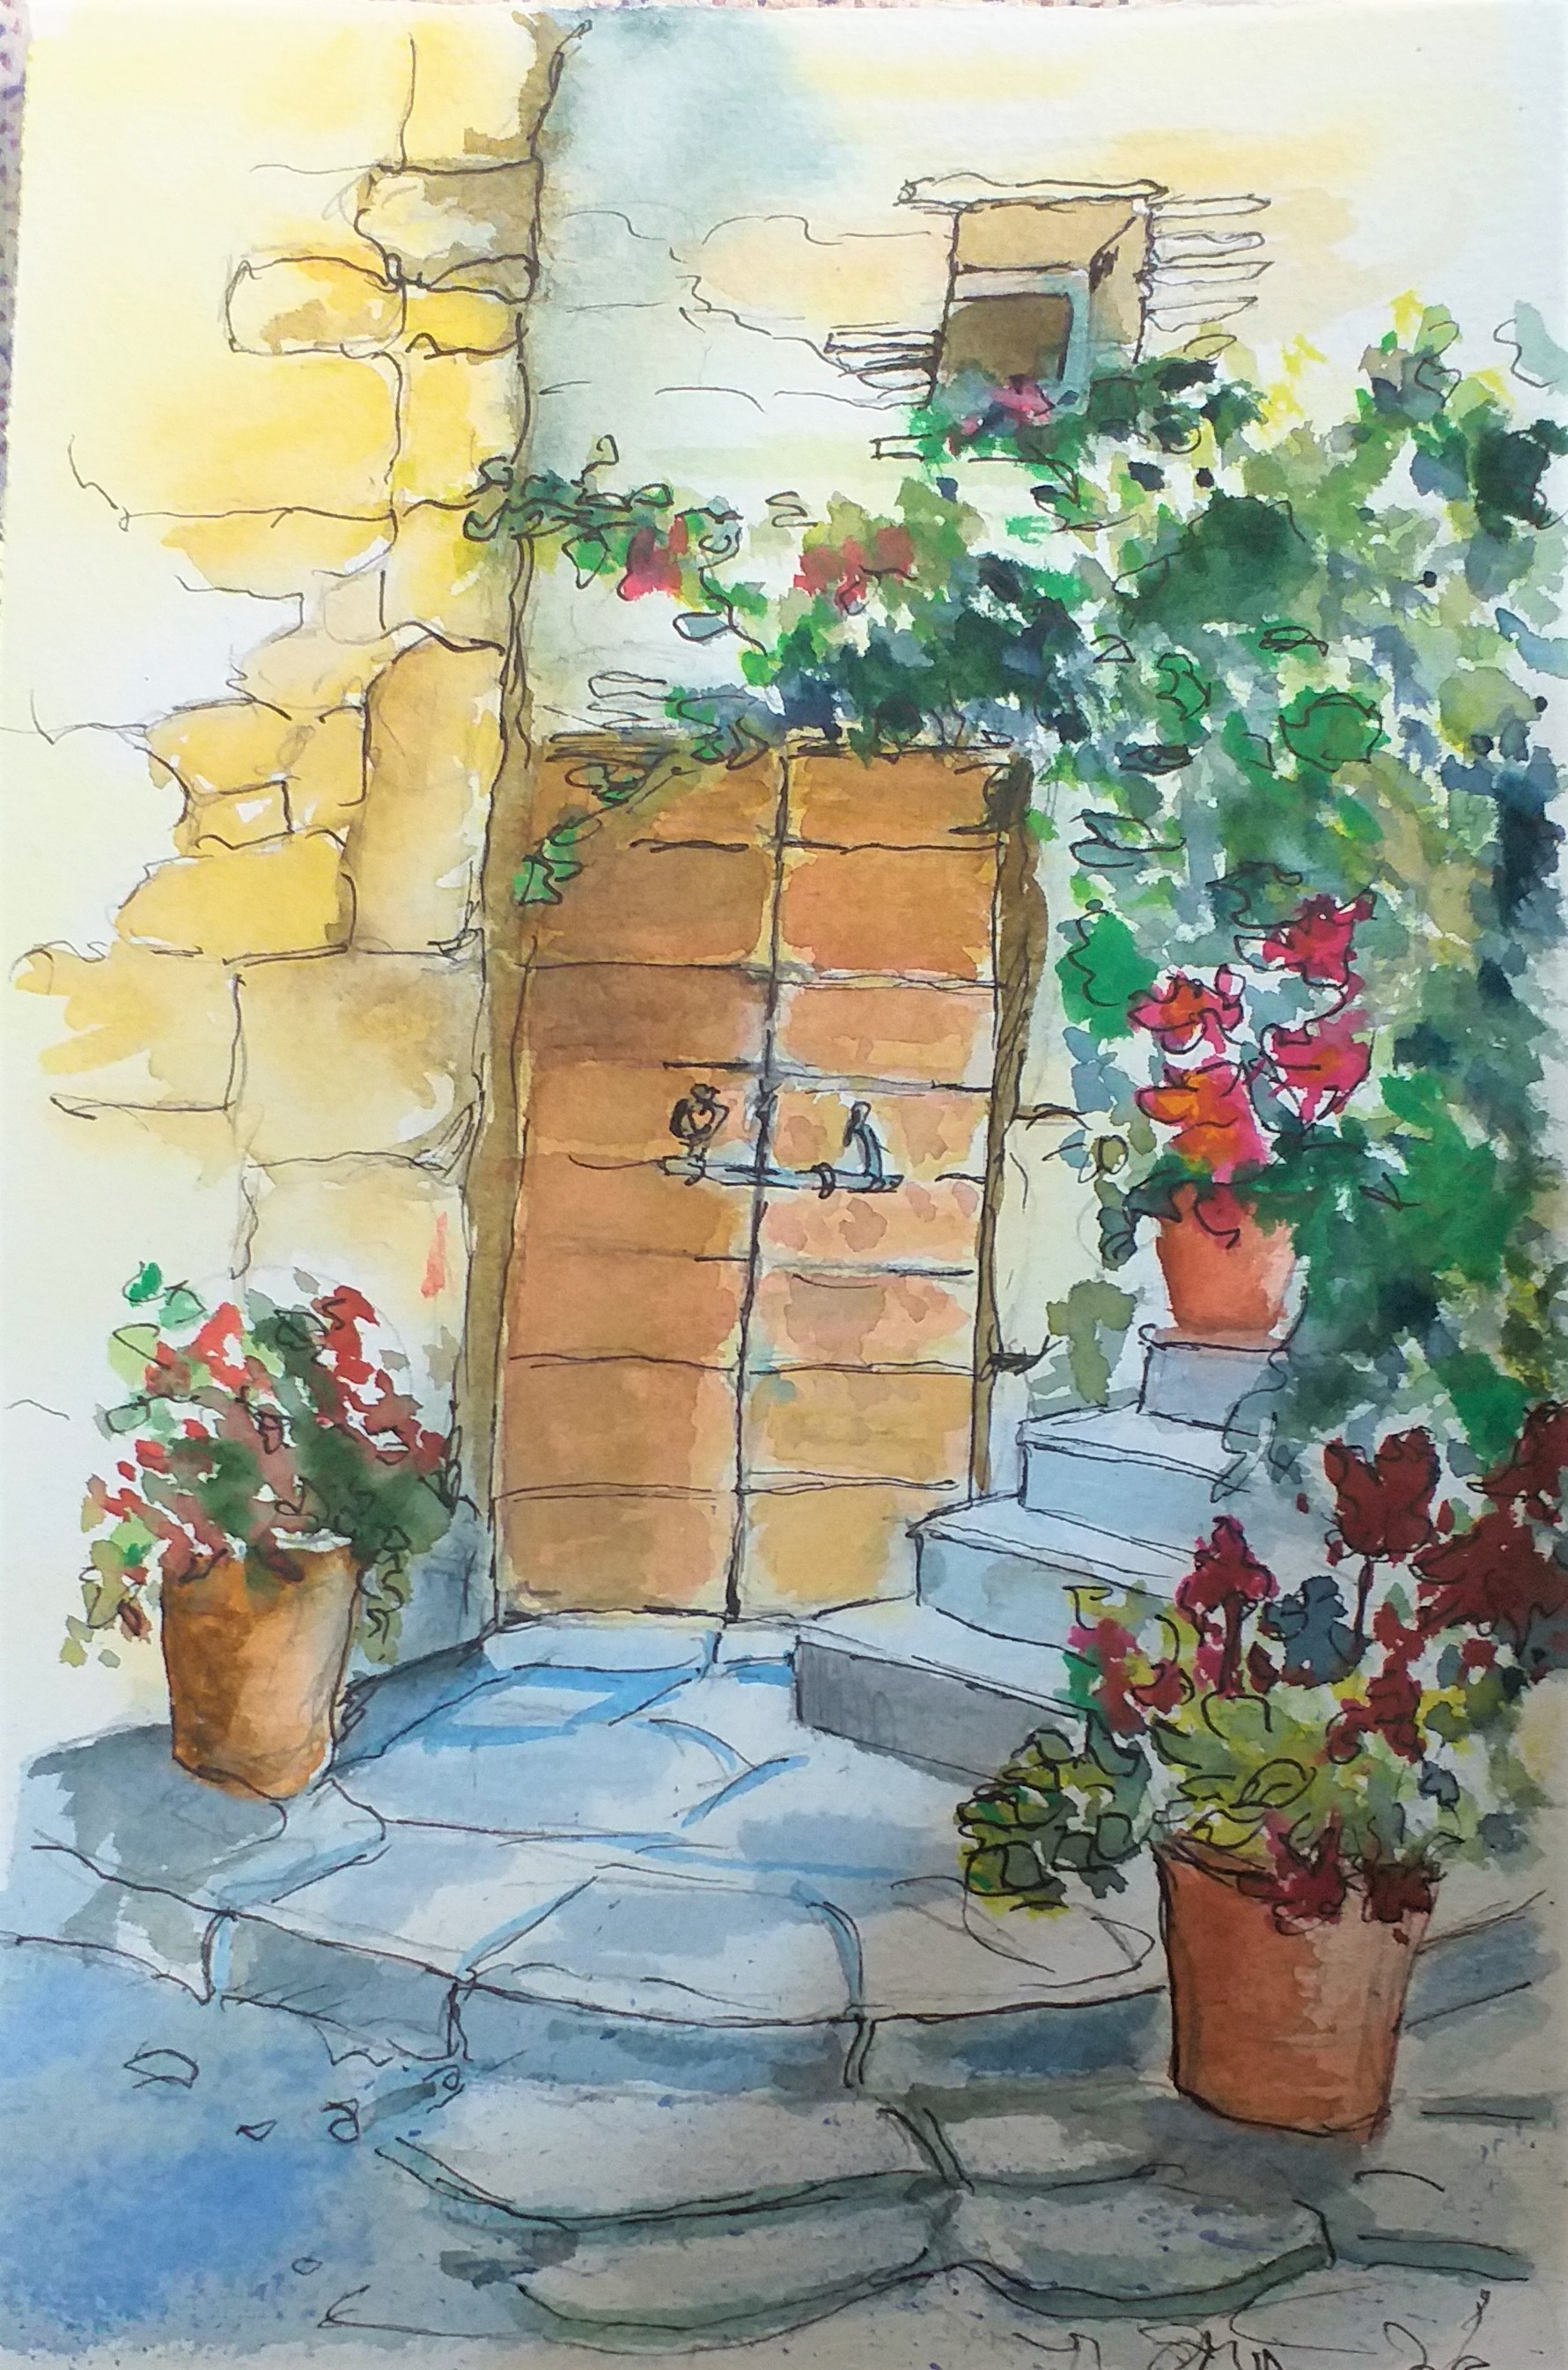 Dana's watercolour painting of architecture